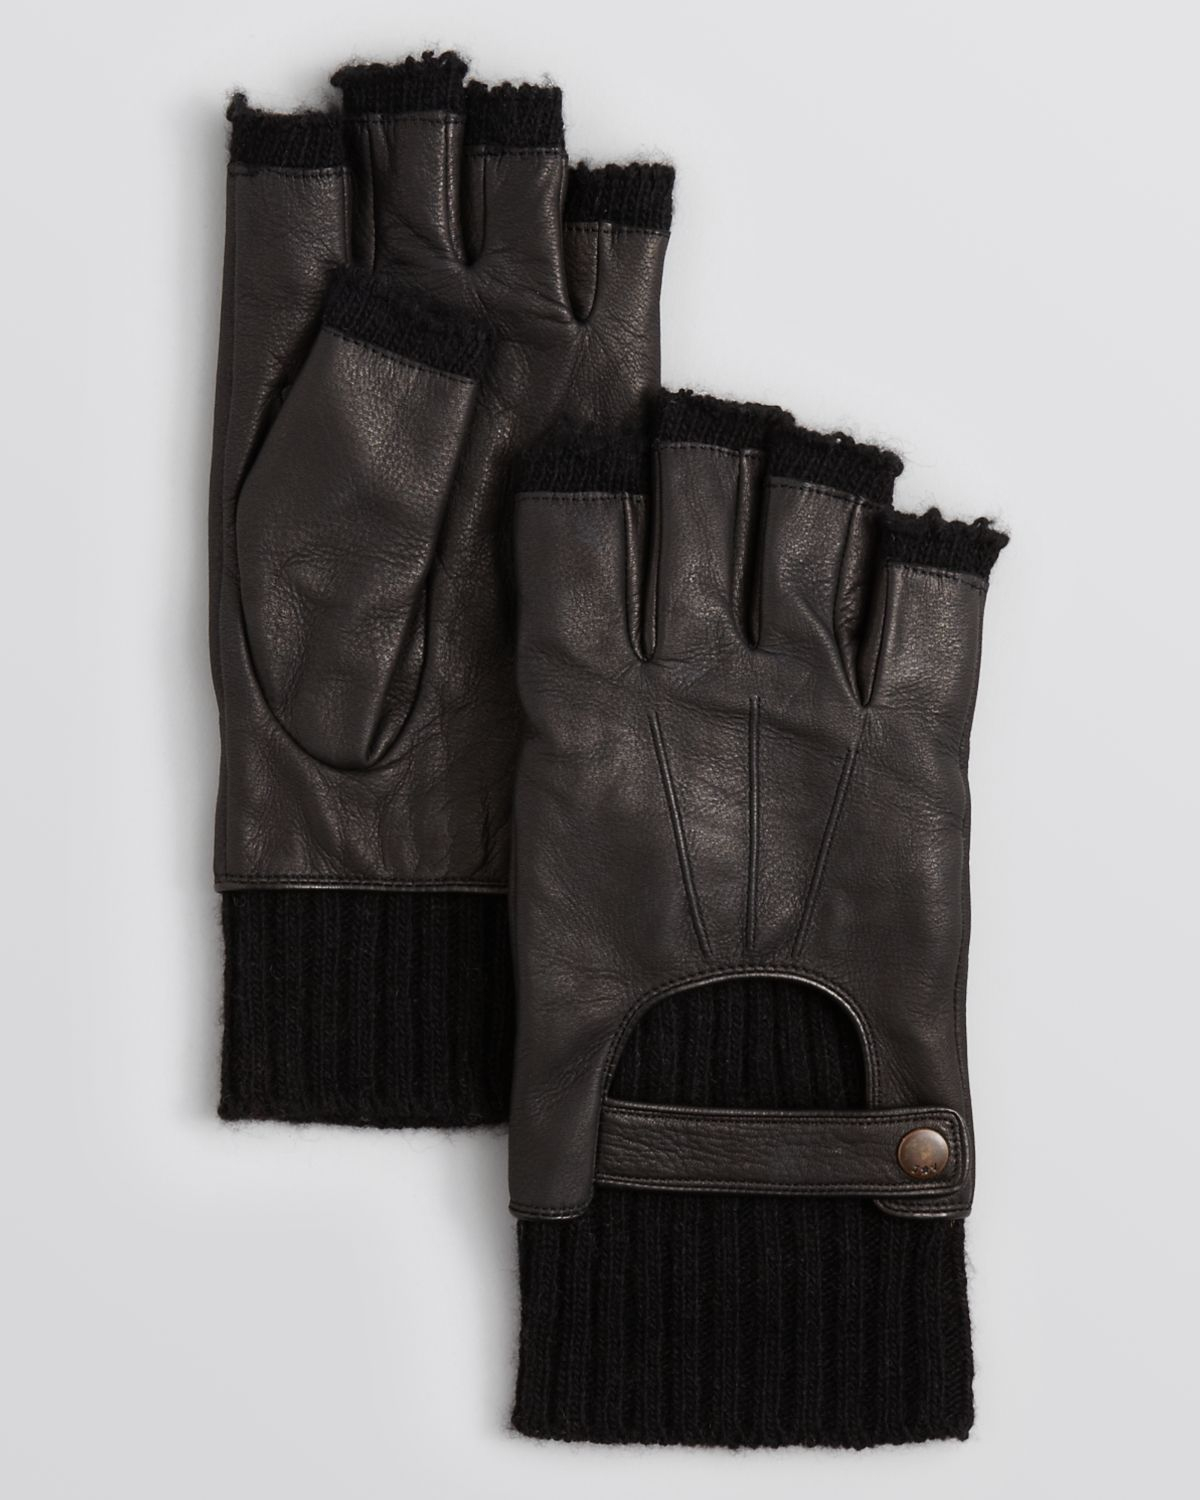 Fingerless leather gloves mens accessories - Gallery Previously Sold At Bloomingdale S Men S Leather Gloves